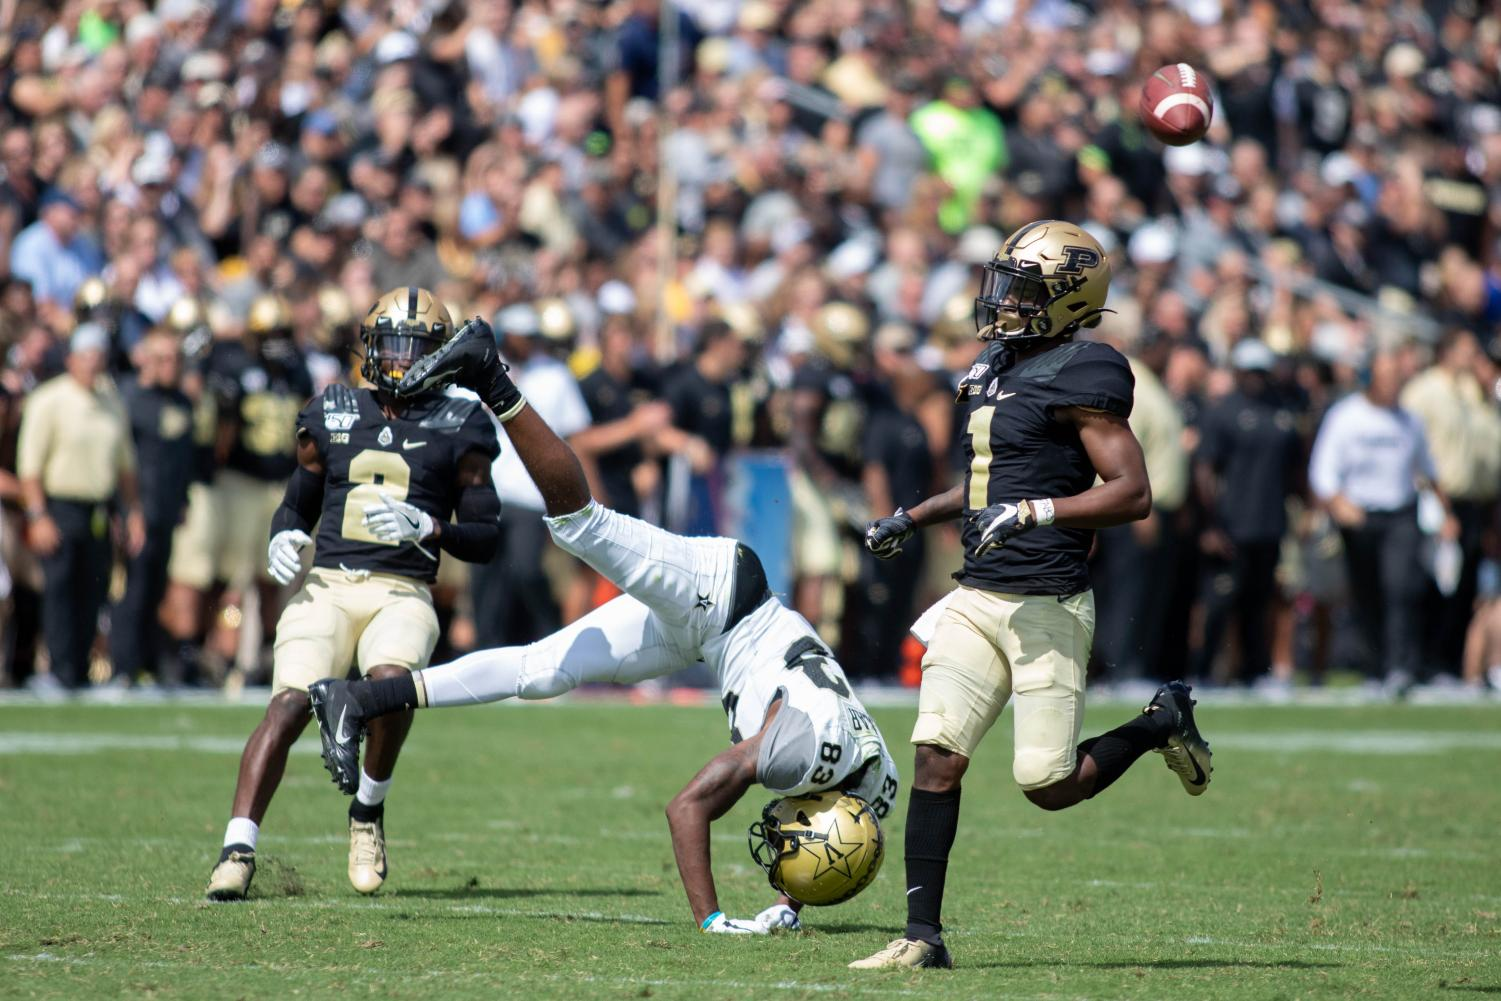 Purdue+beats+Vandy+42-24+in+Indiana+on+Saturday%2C+Sept.+7.+%28Photo+by+Emily+Gonc%CC%A7alves%29